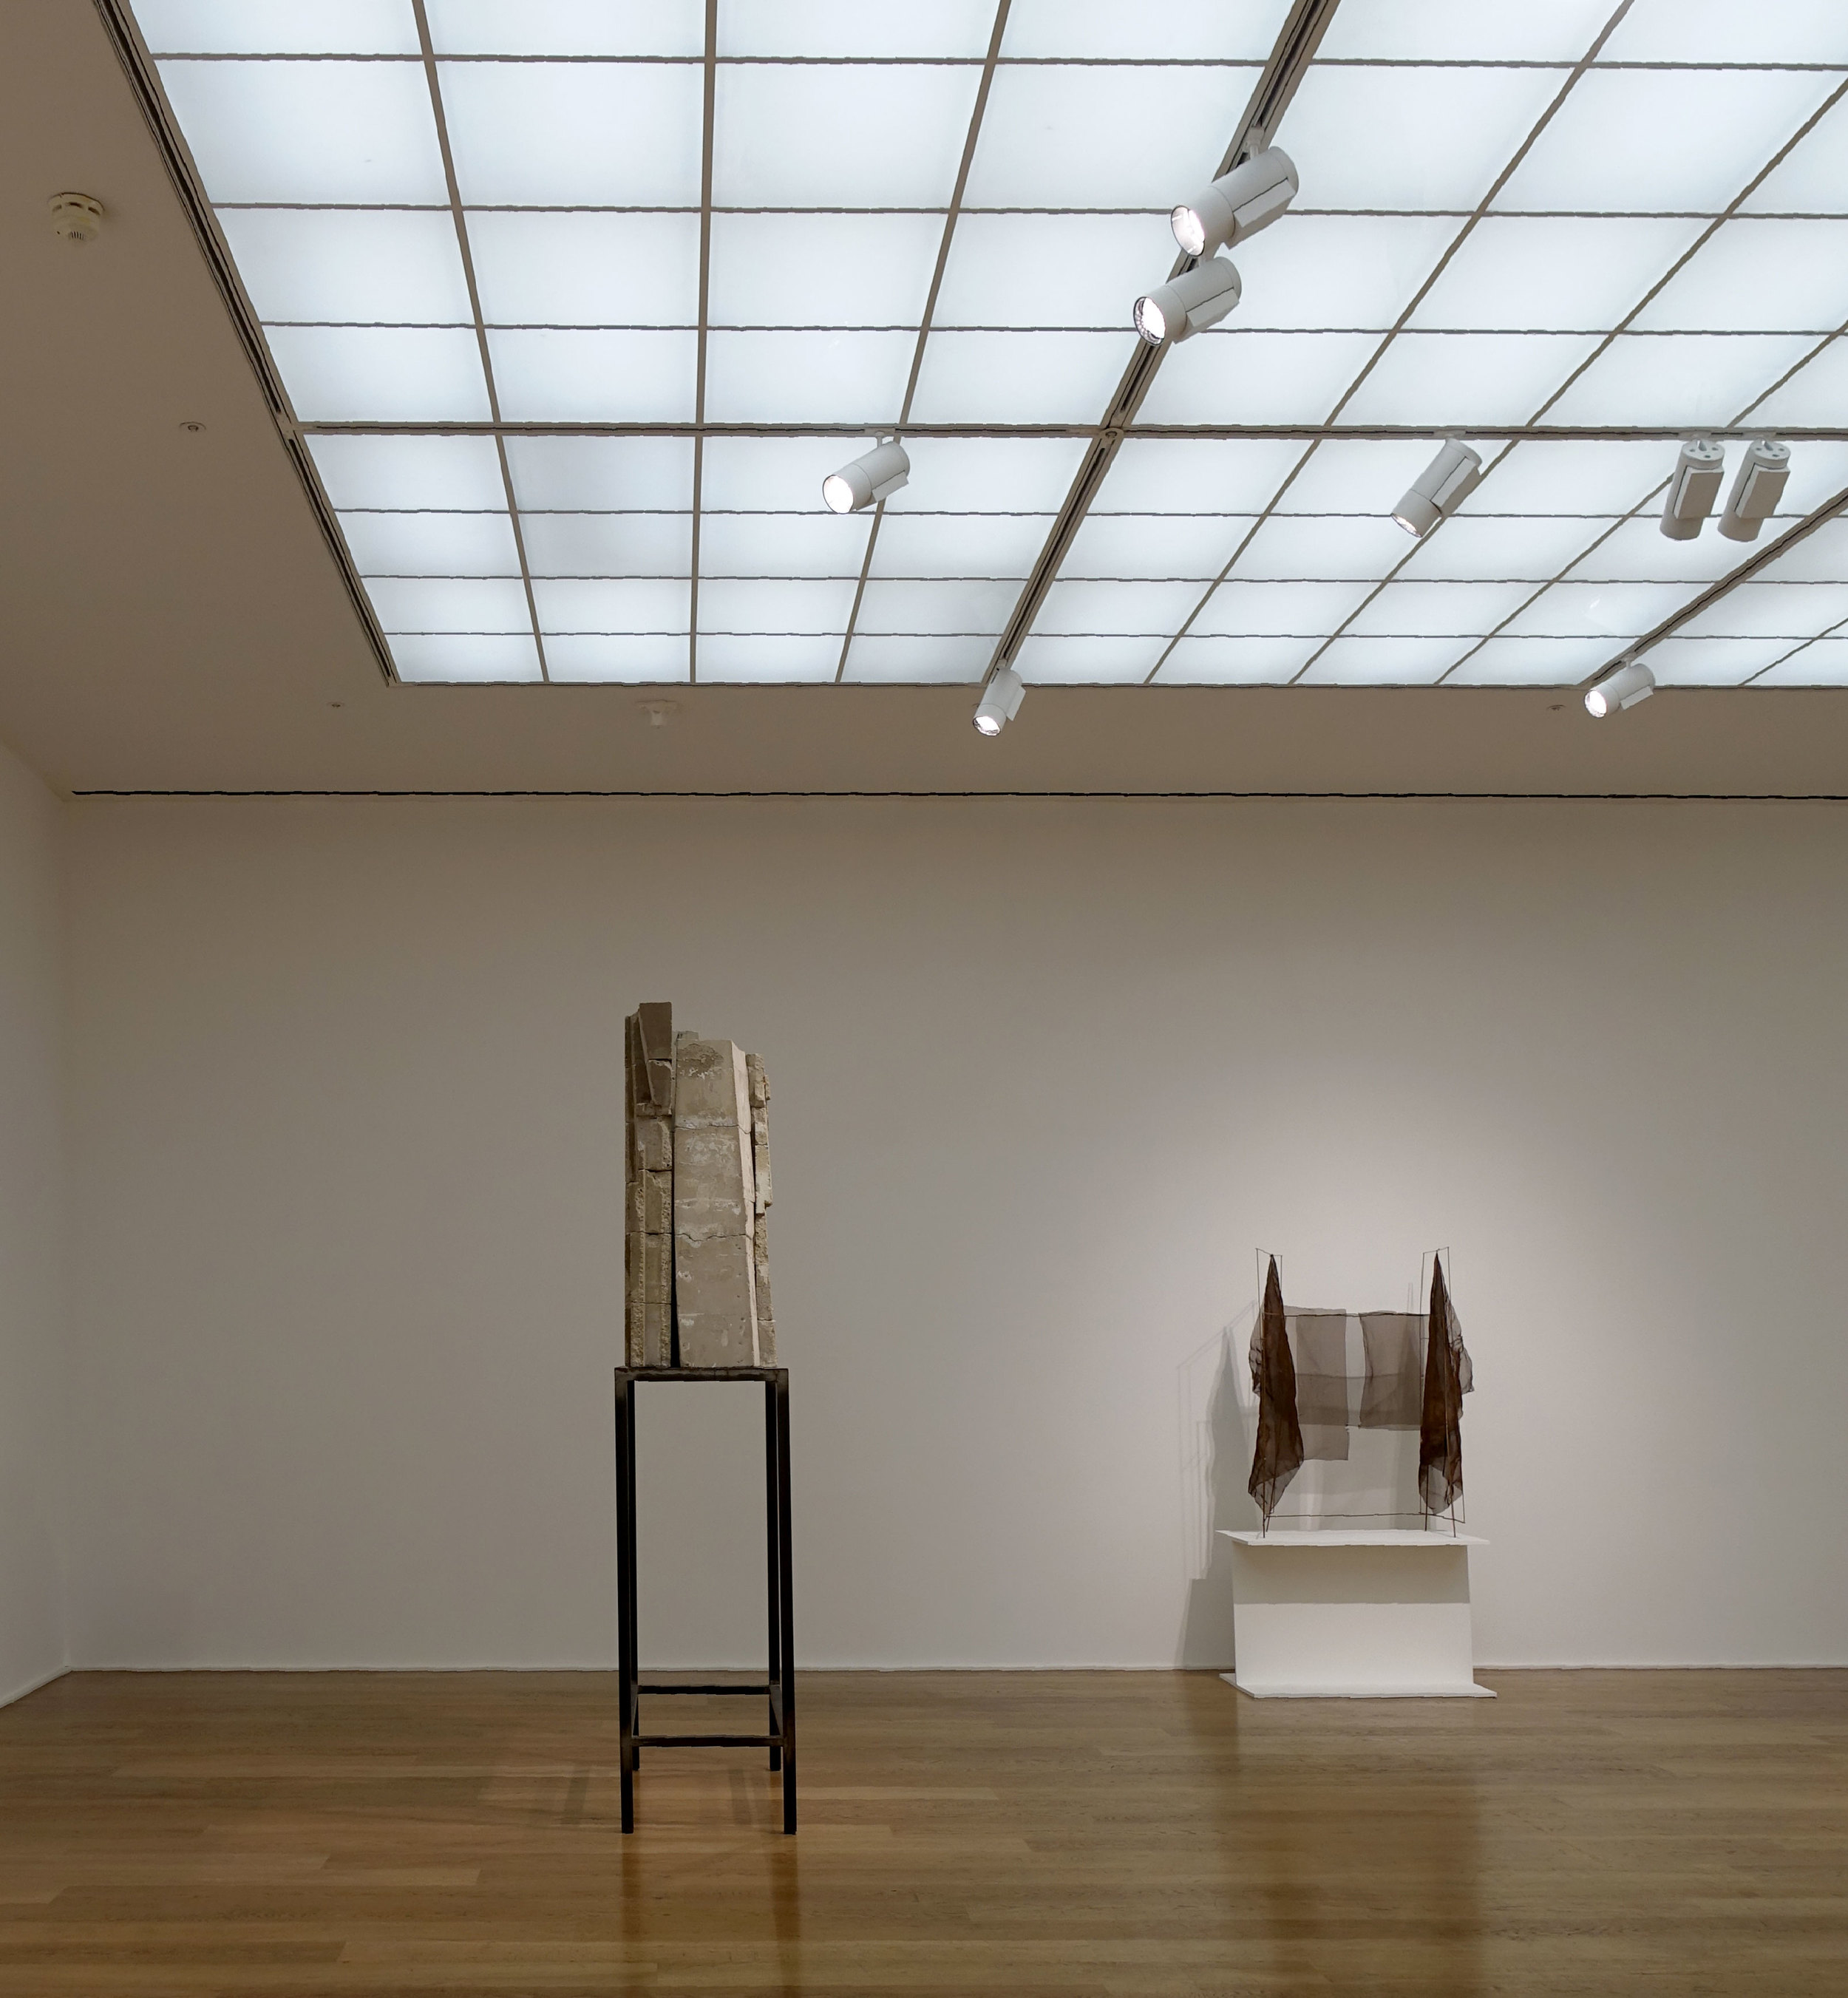 Genzken and Fausto Melotti at Hauser and Wirth in London